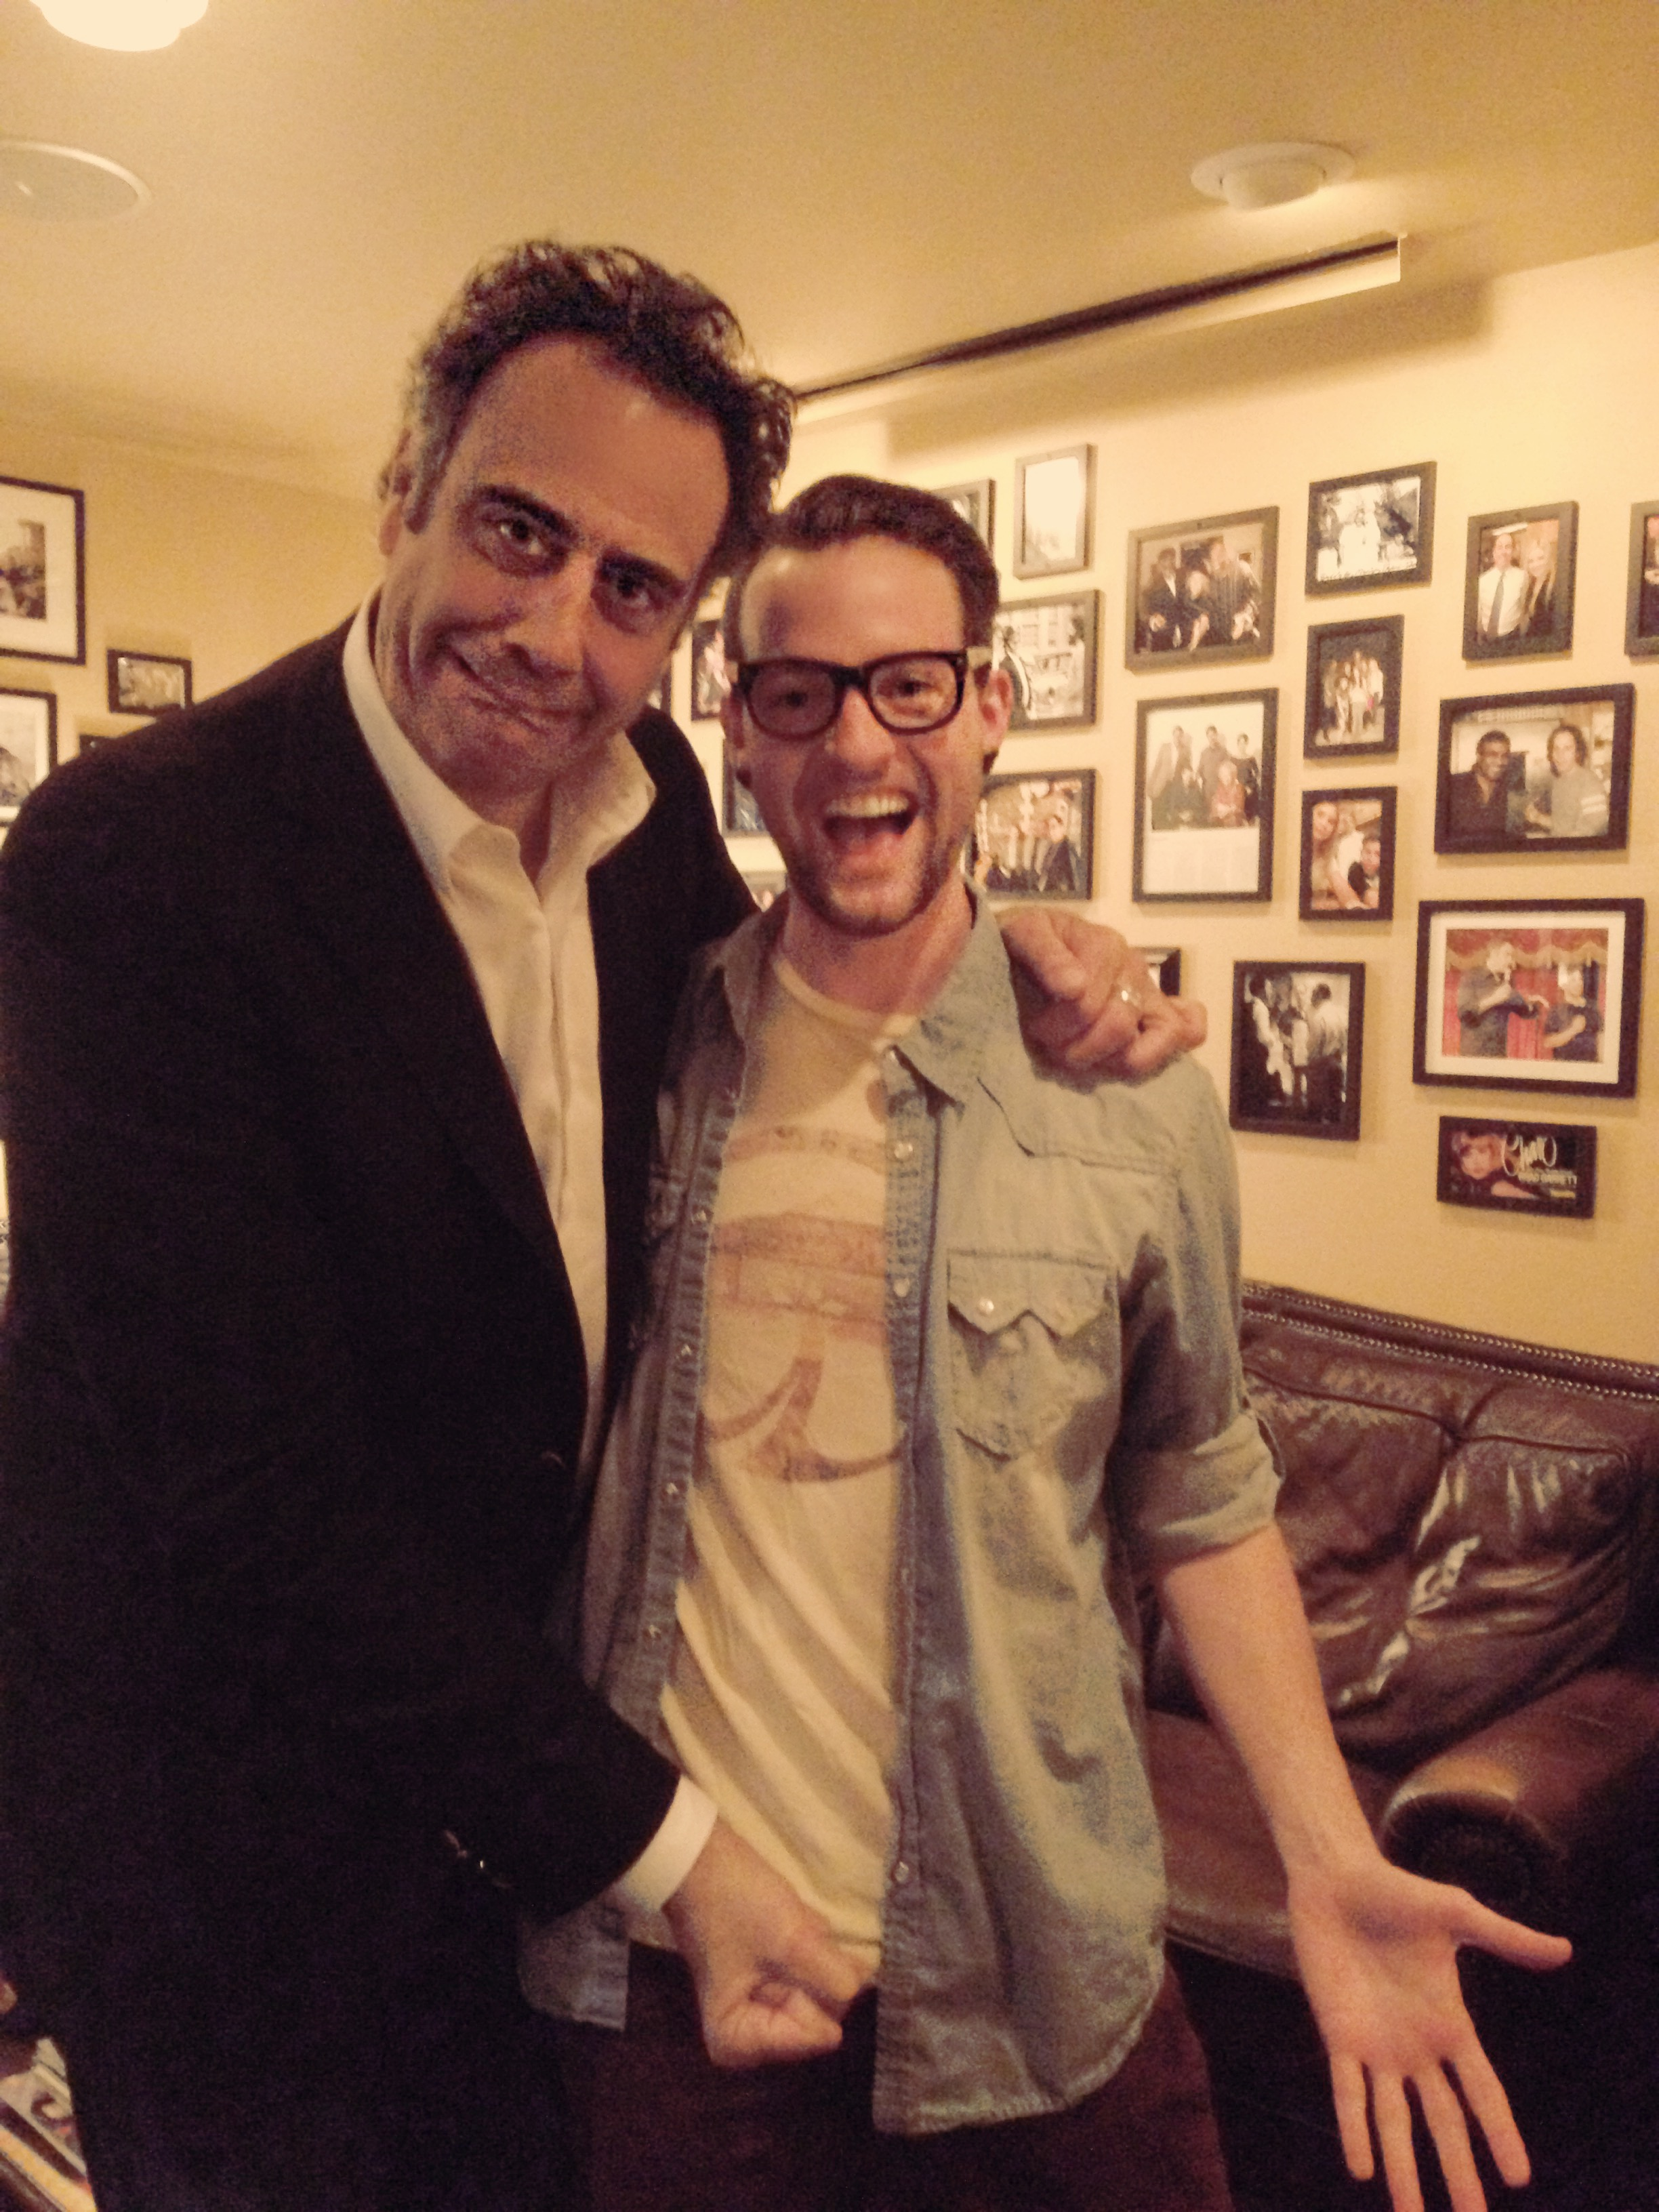 Brad Garrett and Ryan M Brewer backstage.